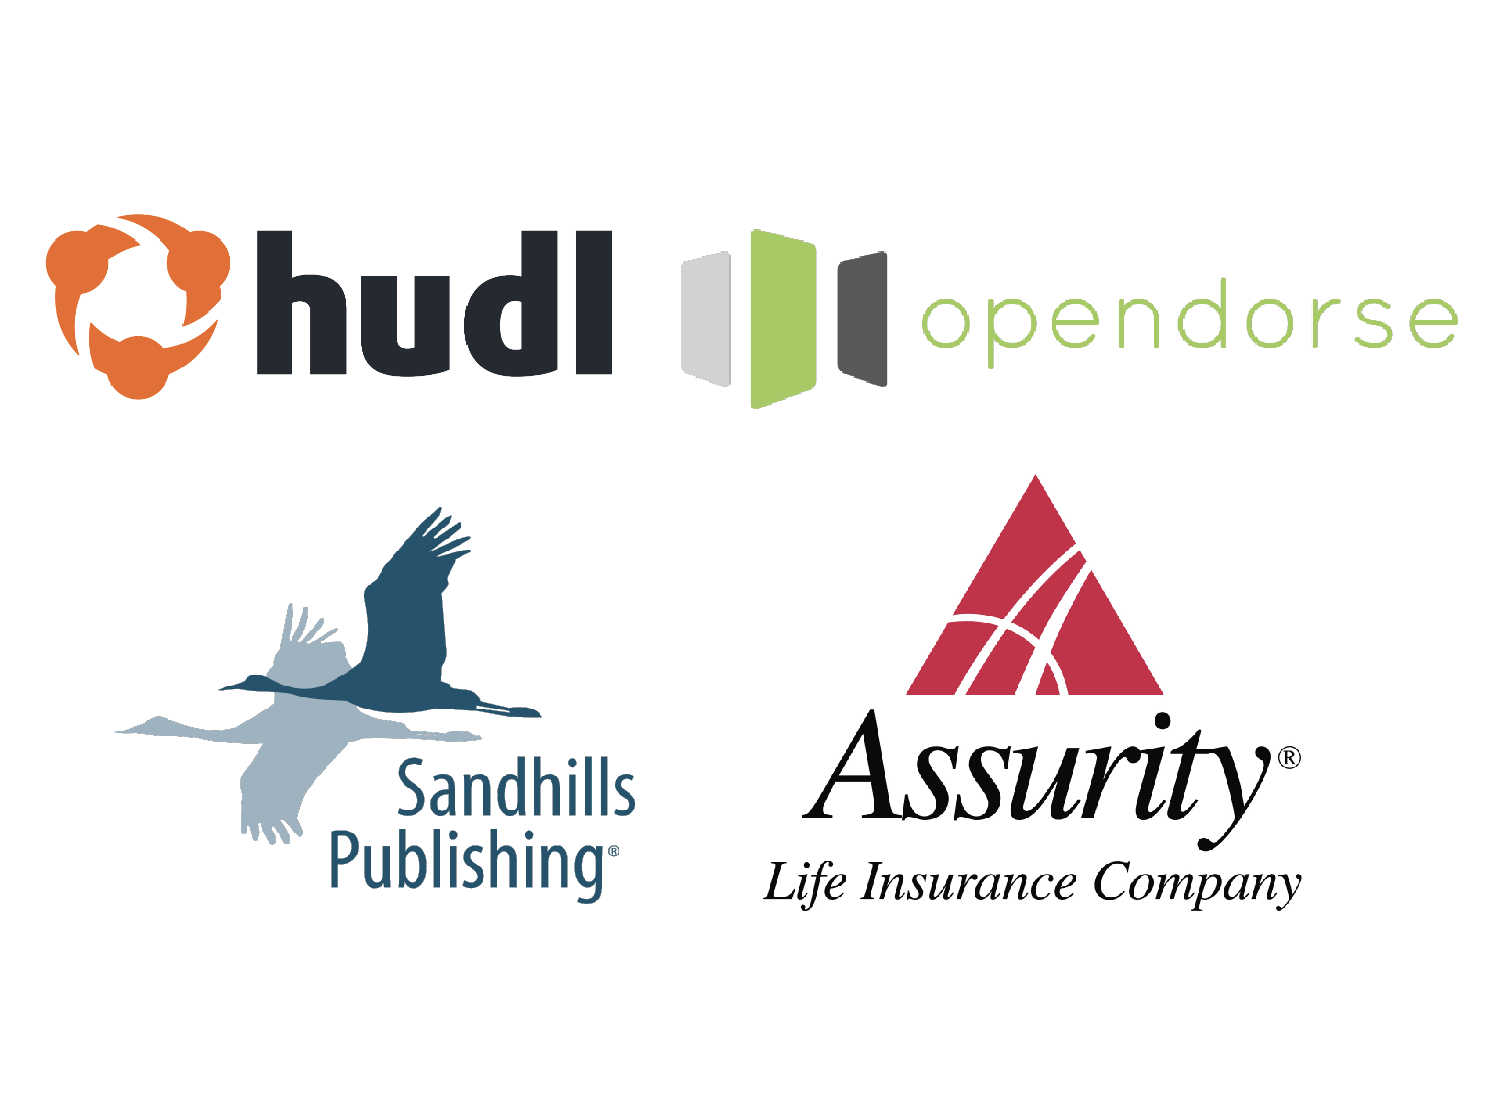 Hudl, opendorse, Sandhills Publishing, and Assurity